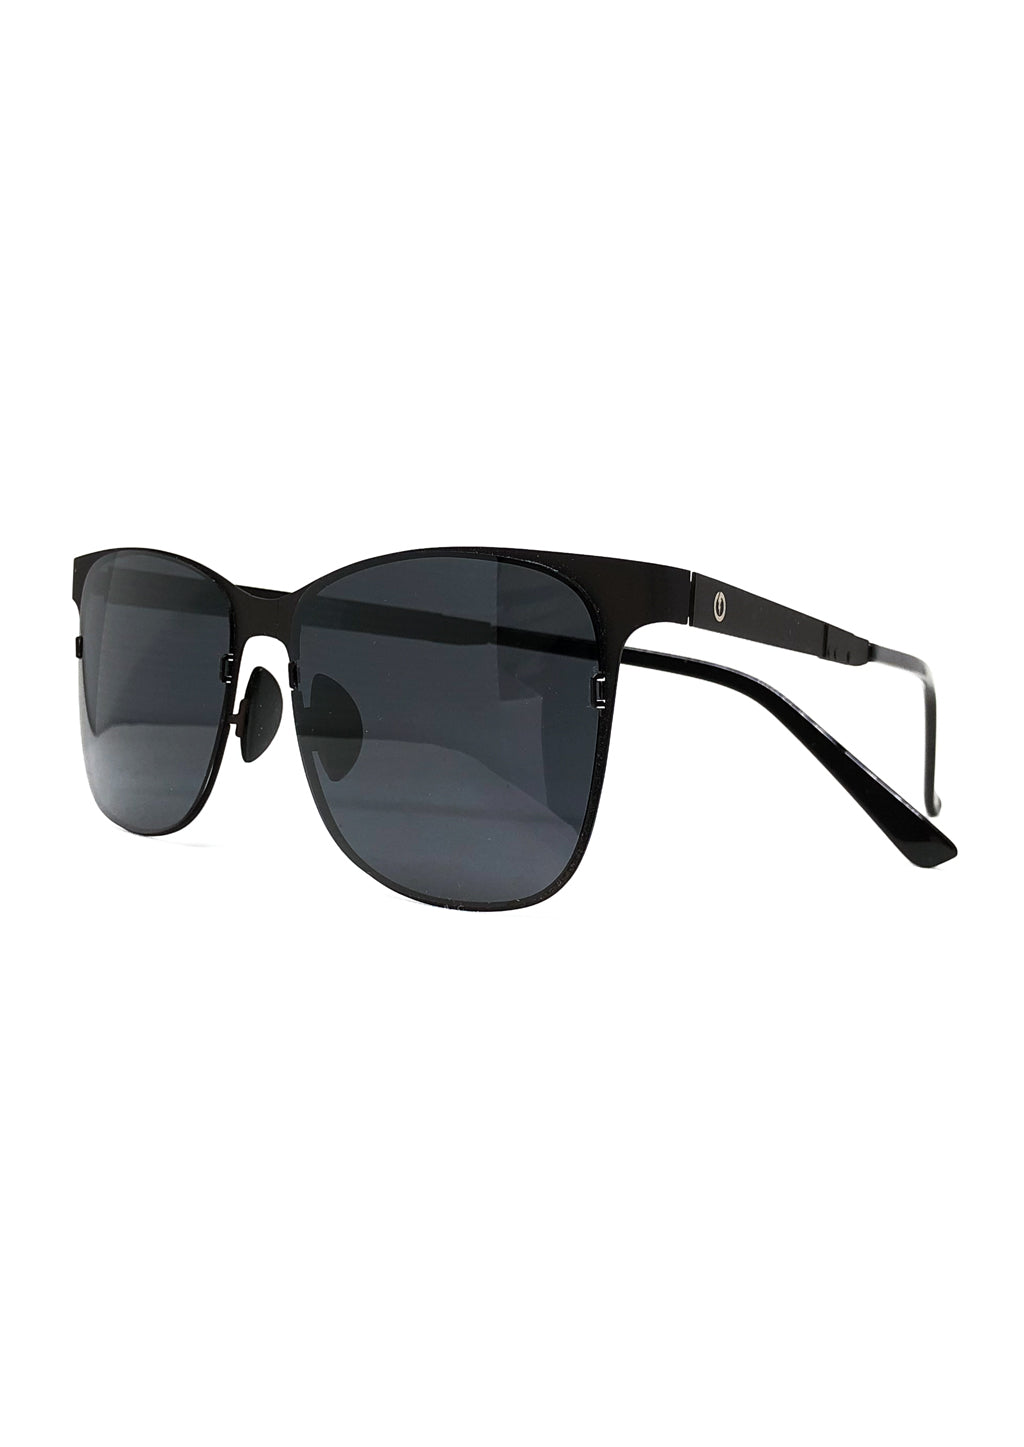 Foldable sunglasses - Rover classic wayfarer design - Photo from the side